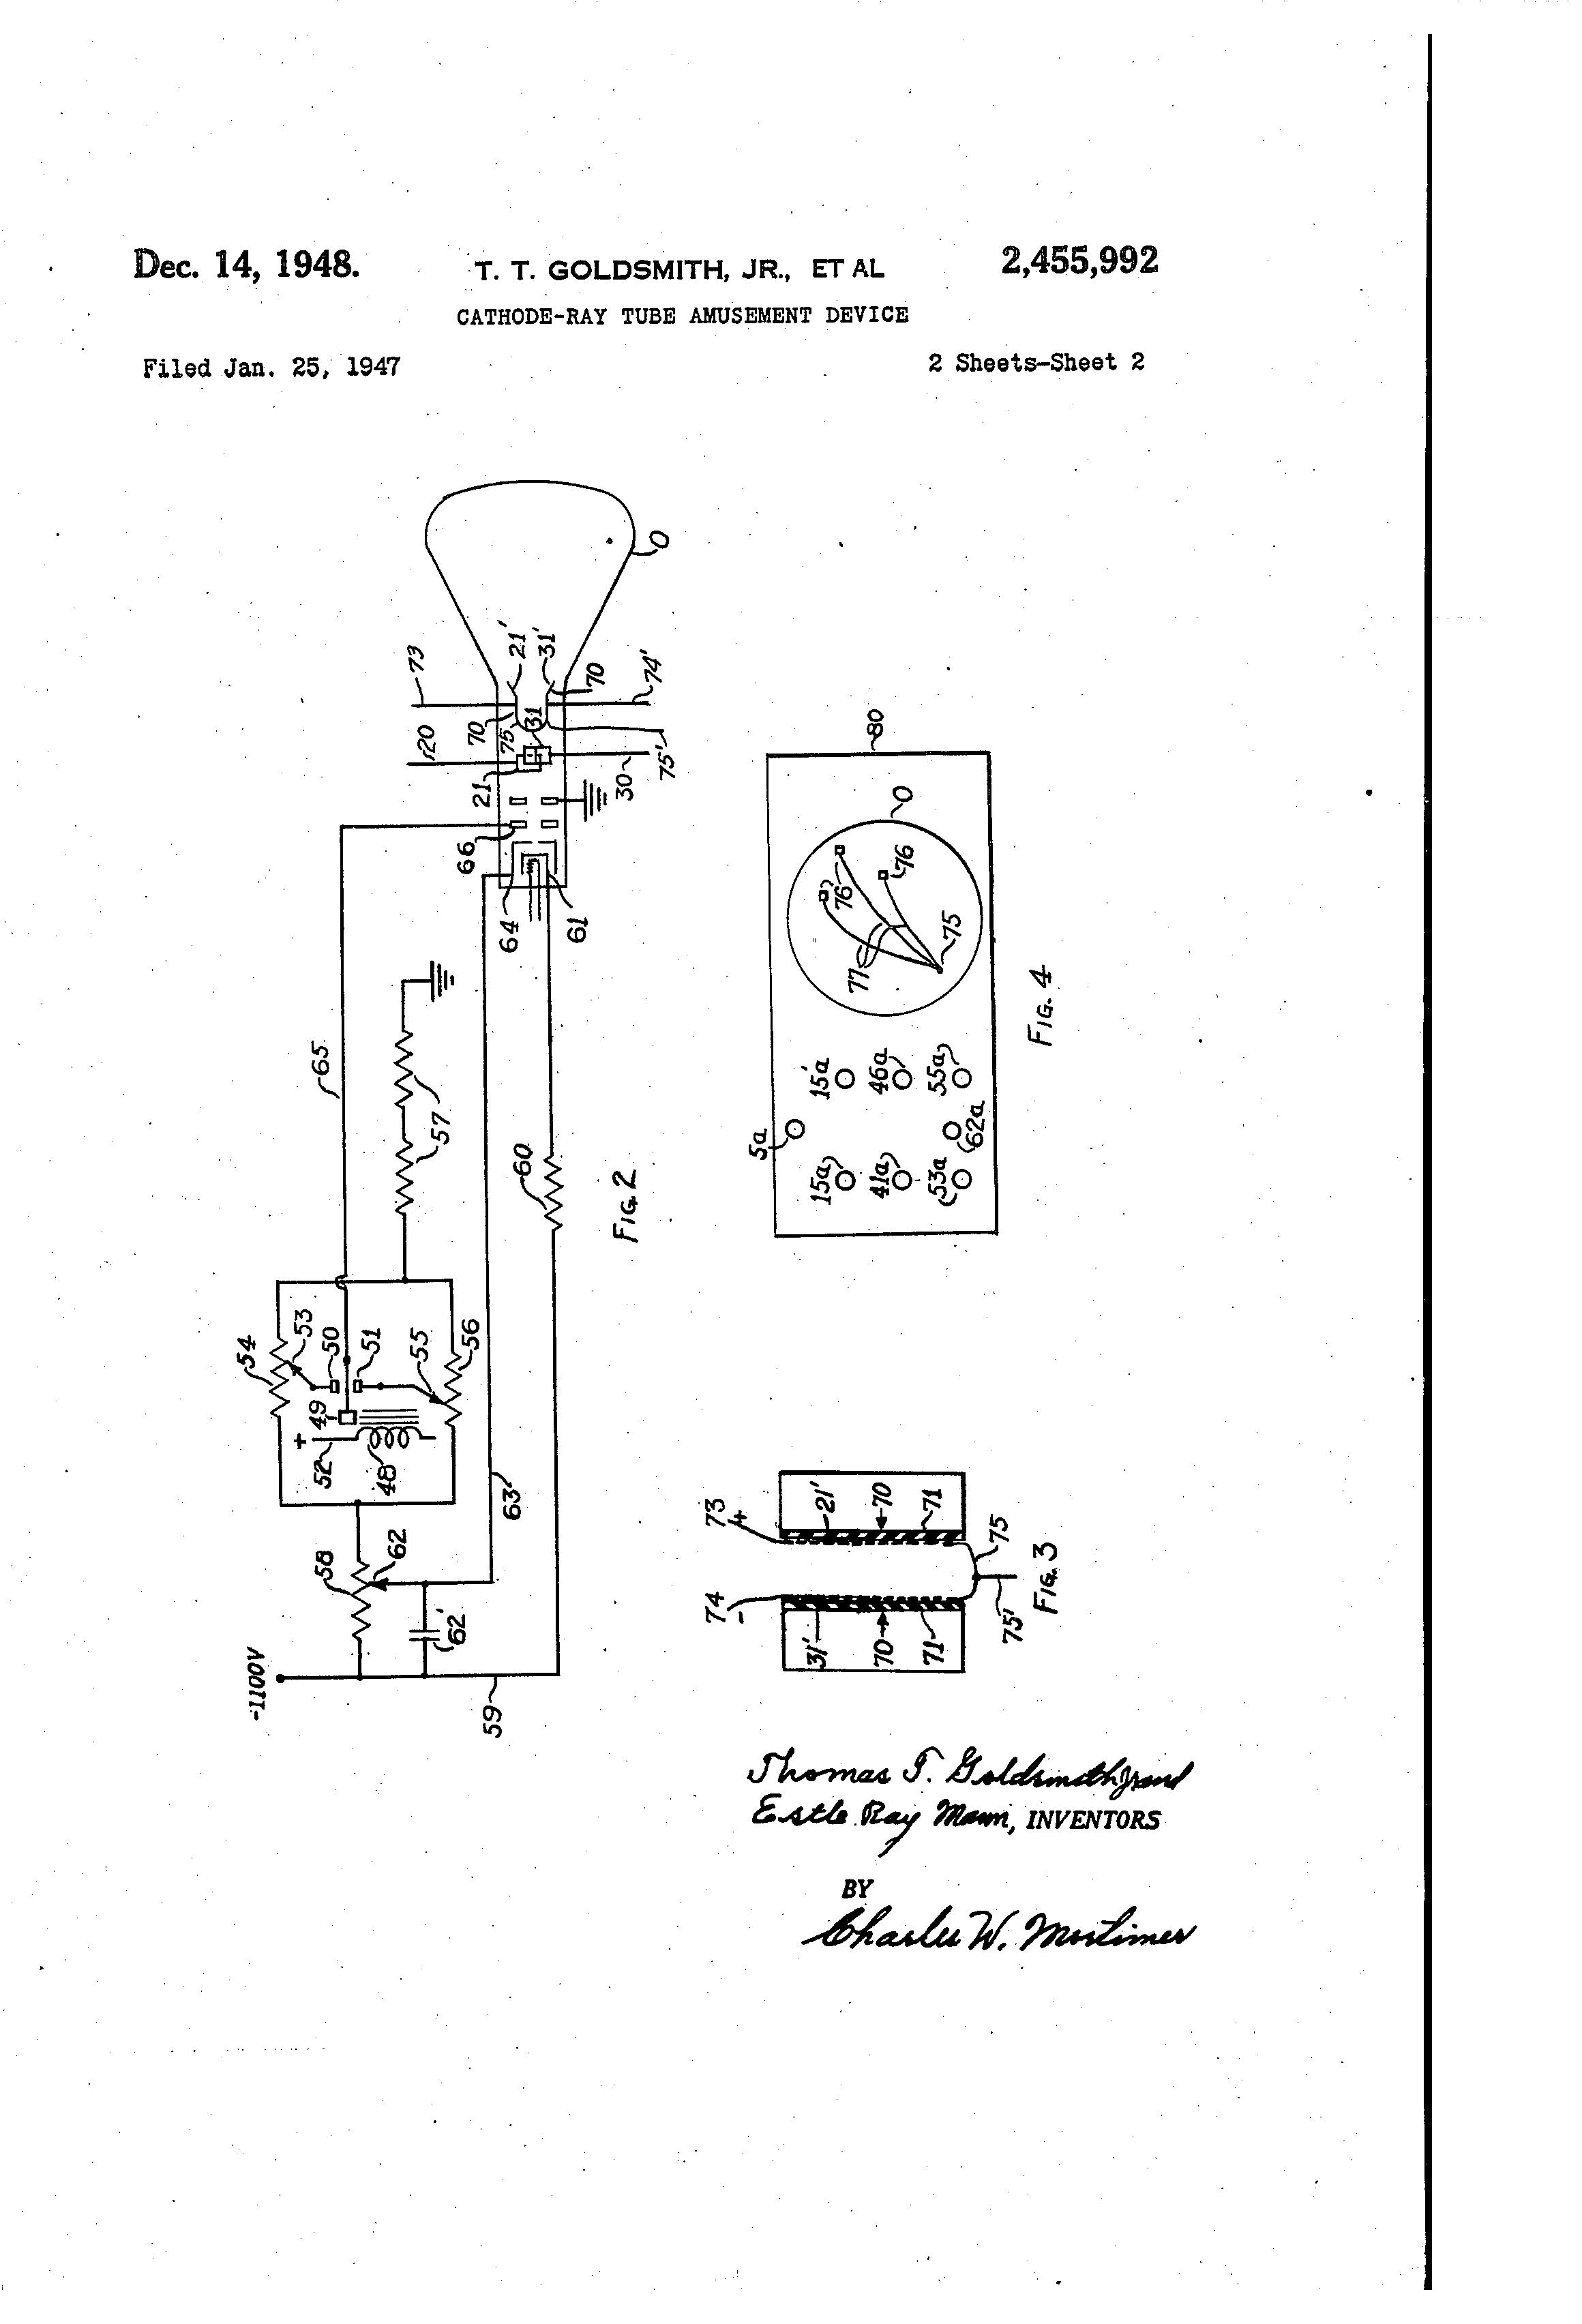 Cathode Ray Tube Amusement Device Patent Drawing 1947 Early Diagram